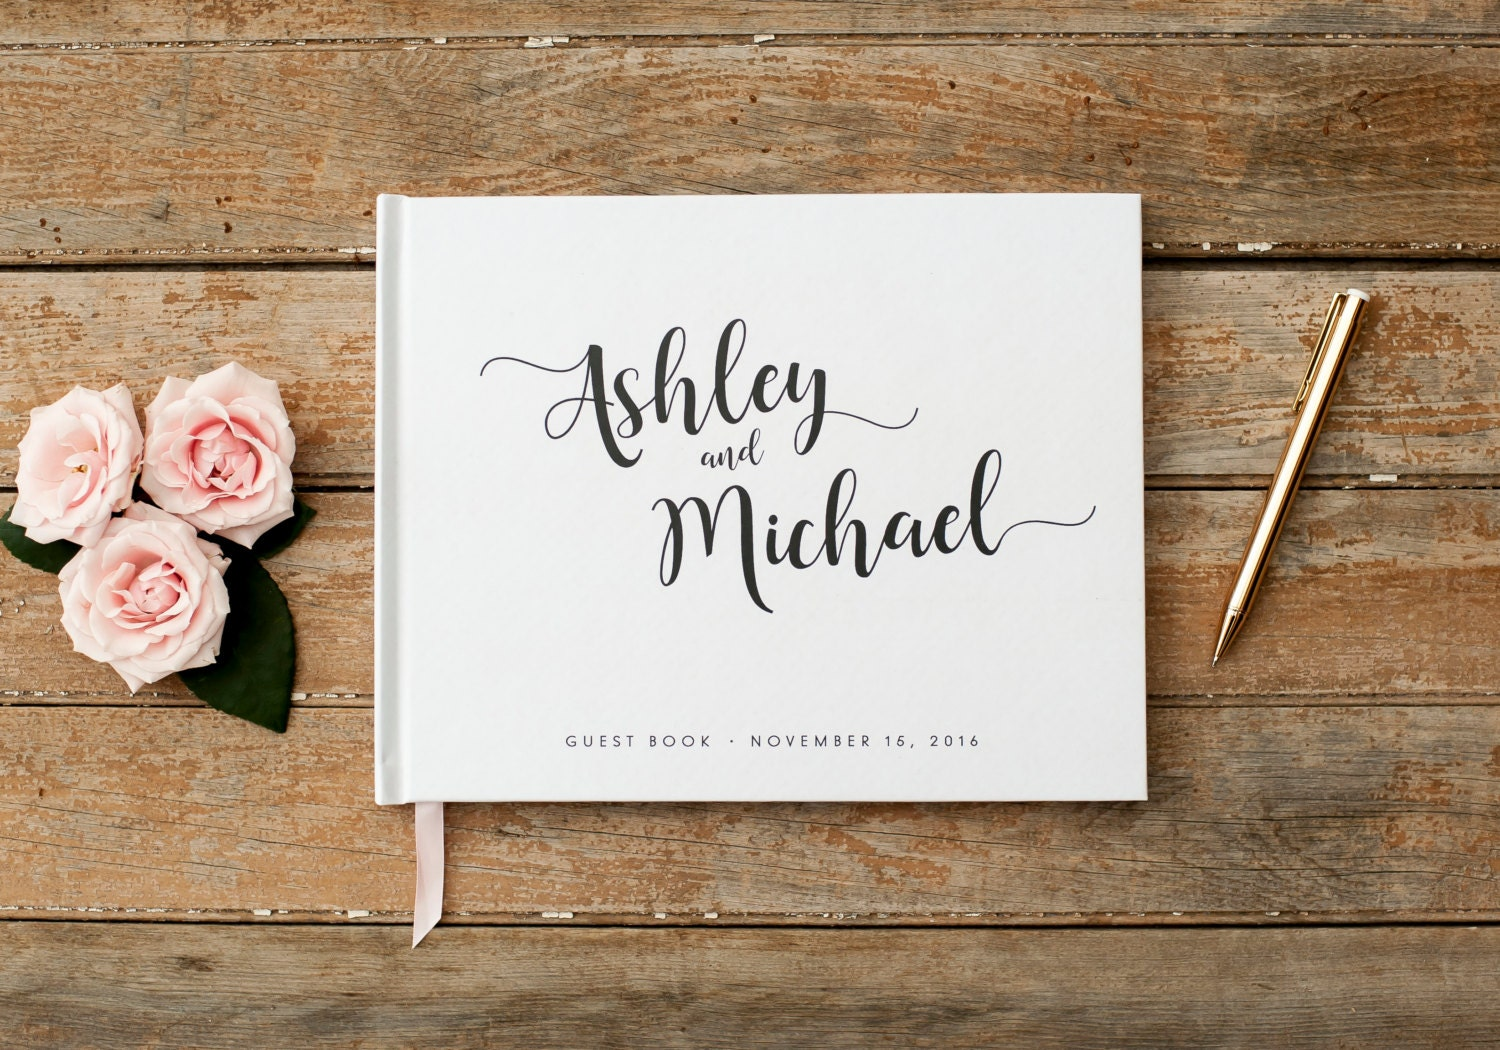 Wedding Guest Book Horizontal Landscape Guestbook Sign In Photobooth Hardcover Planner Baby White